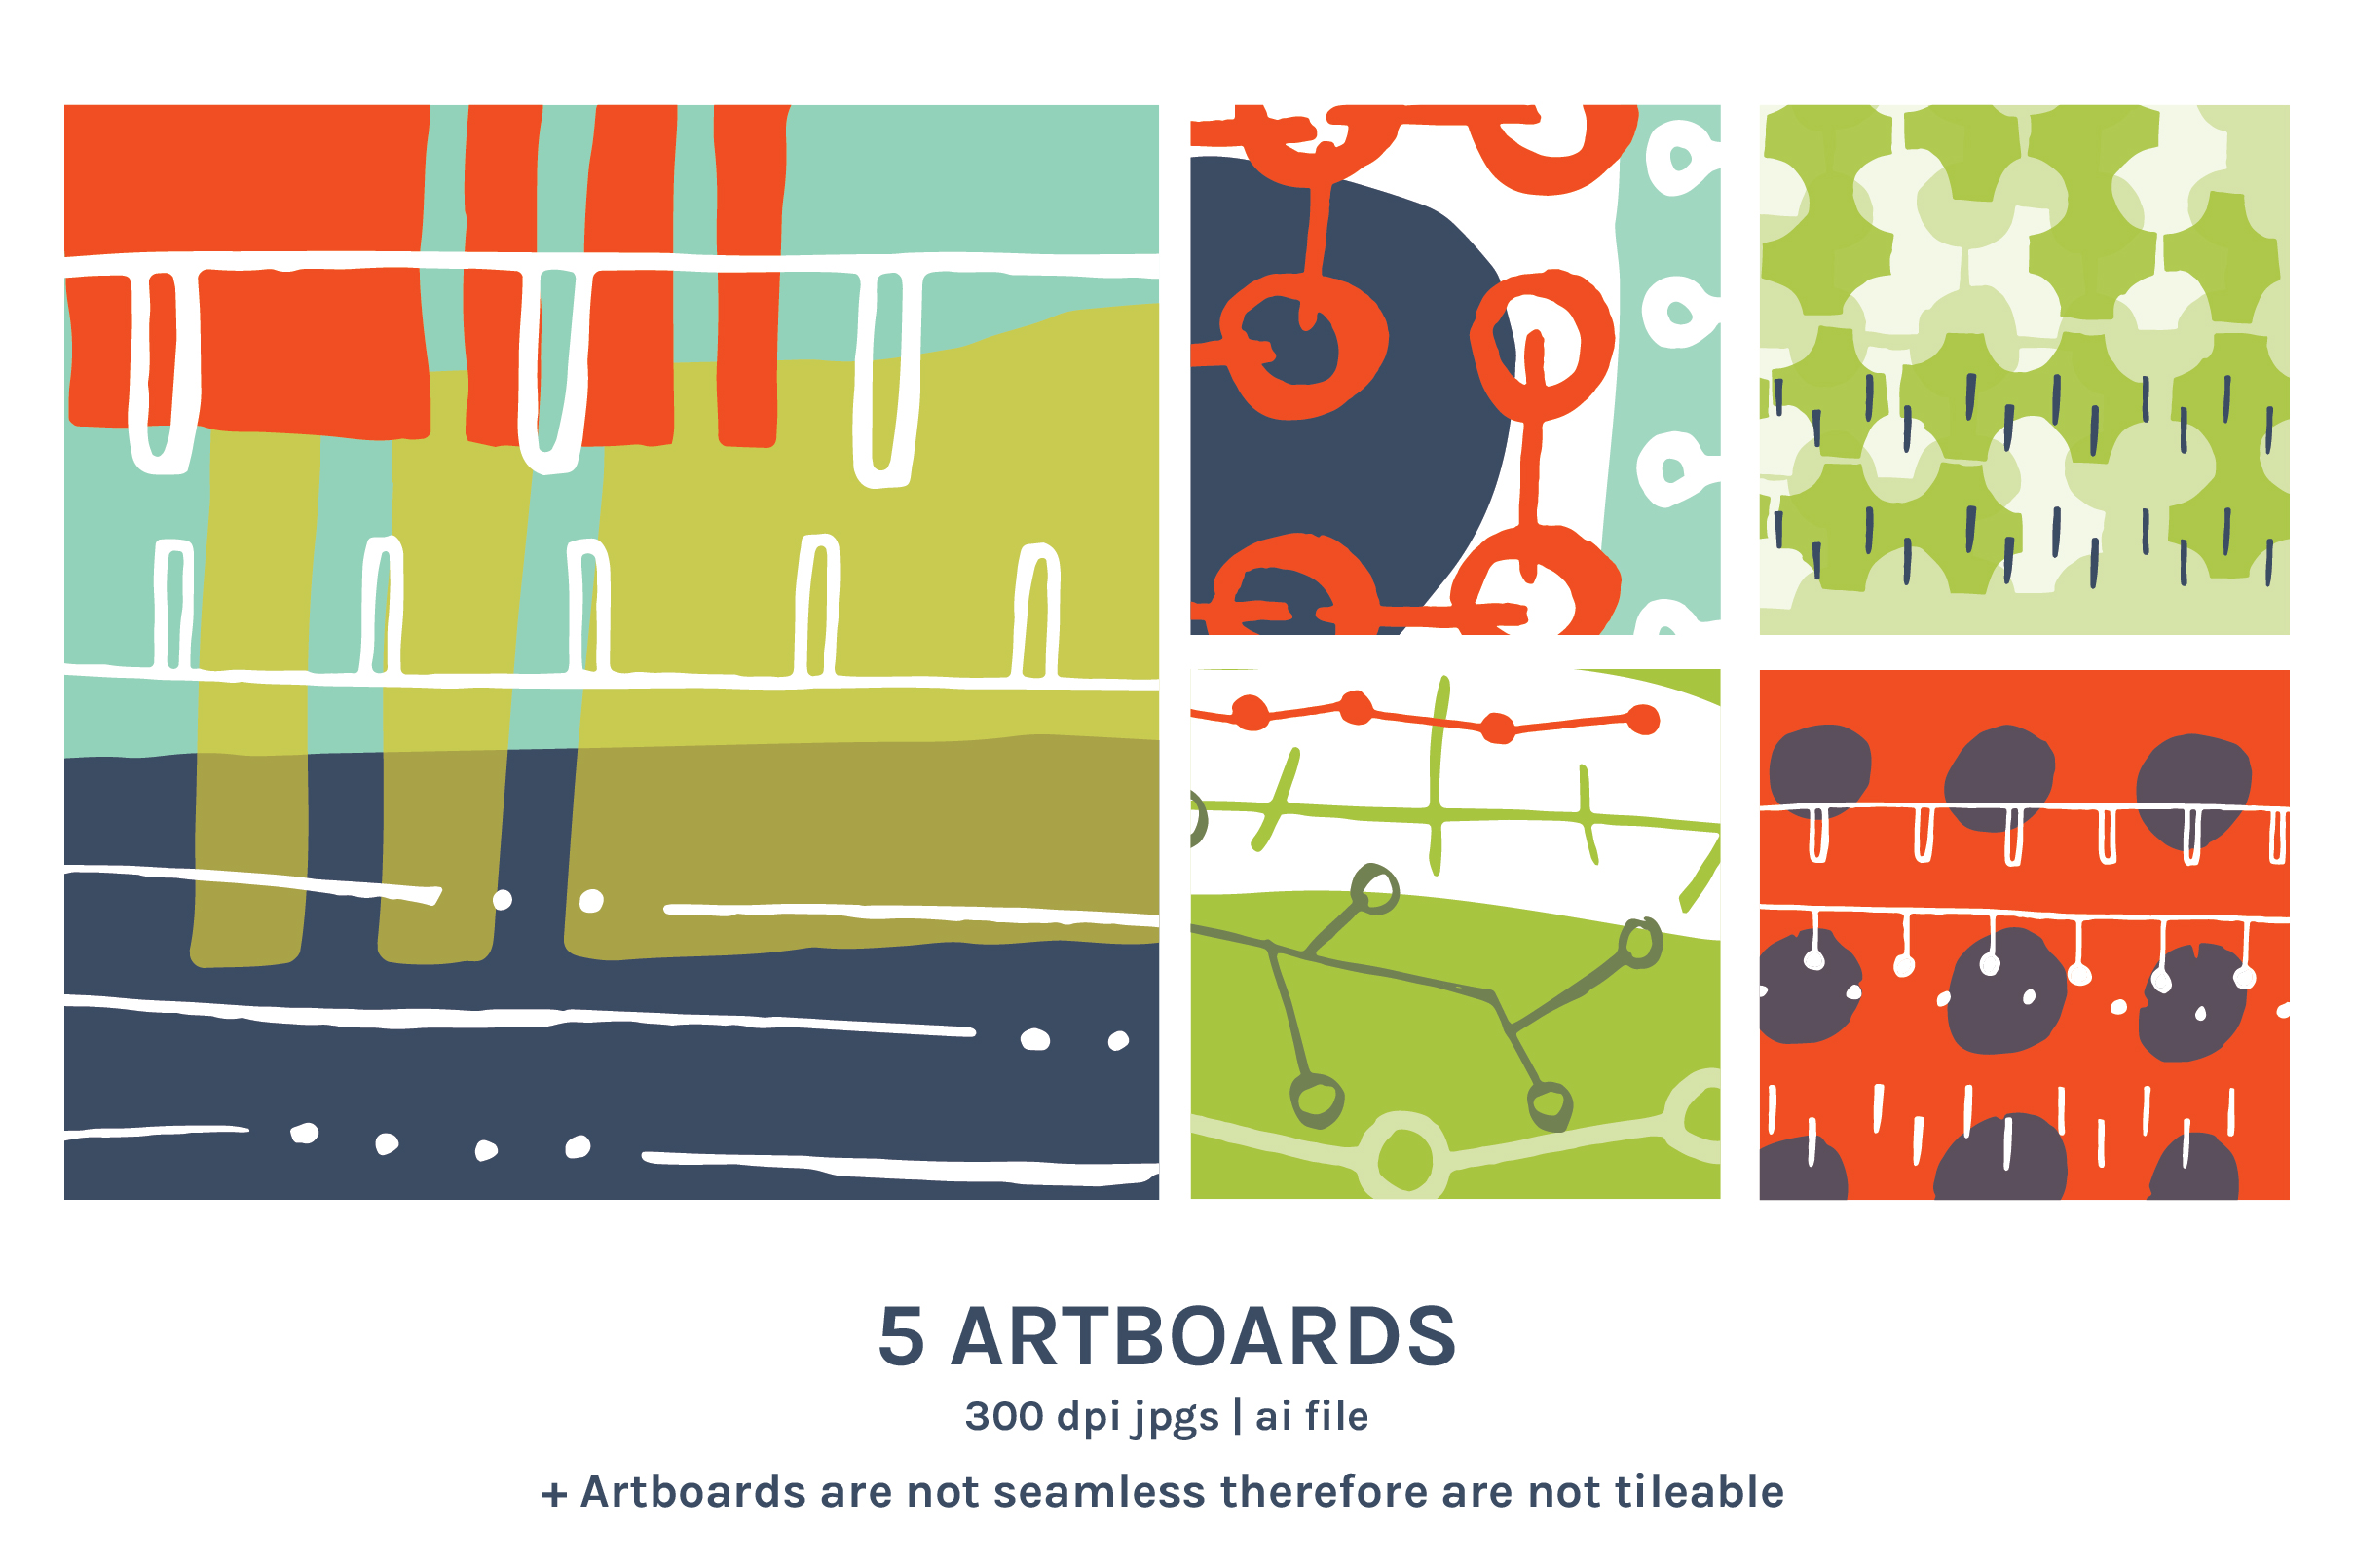 Circuits & Data Patterns And Artboards